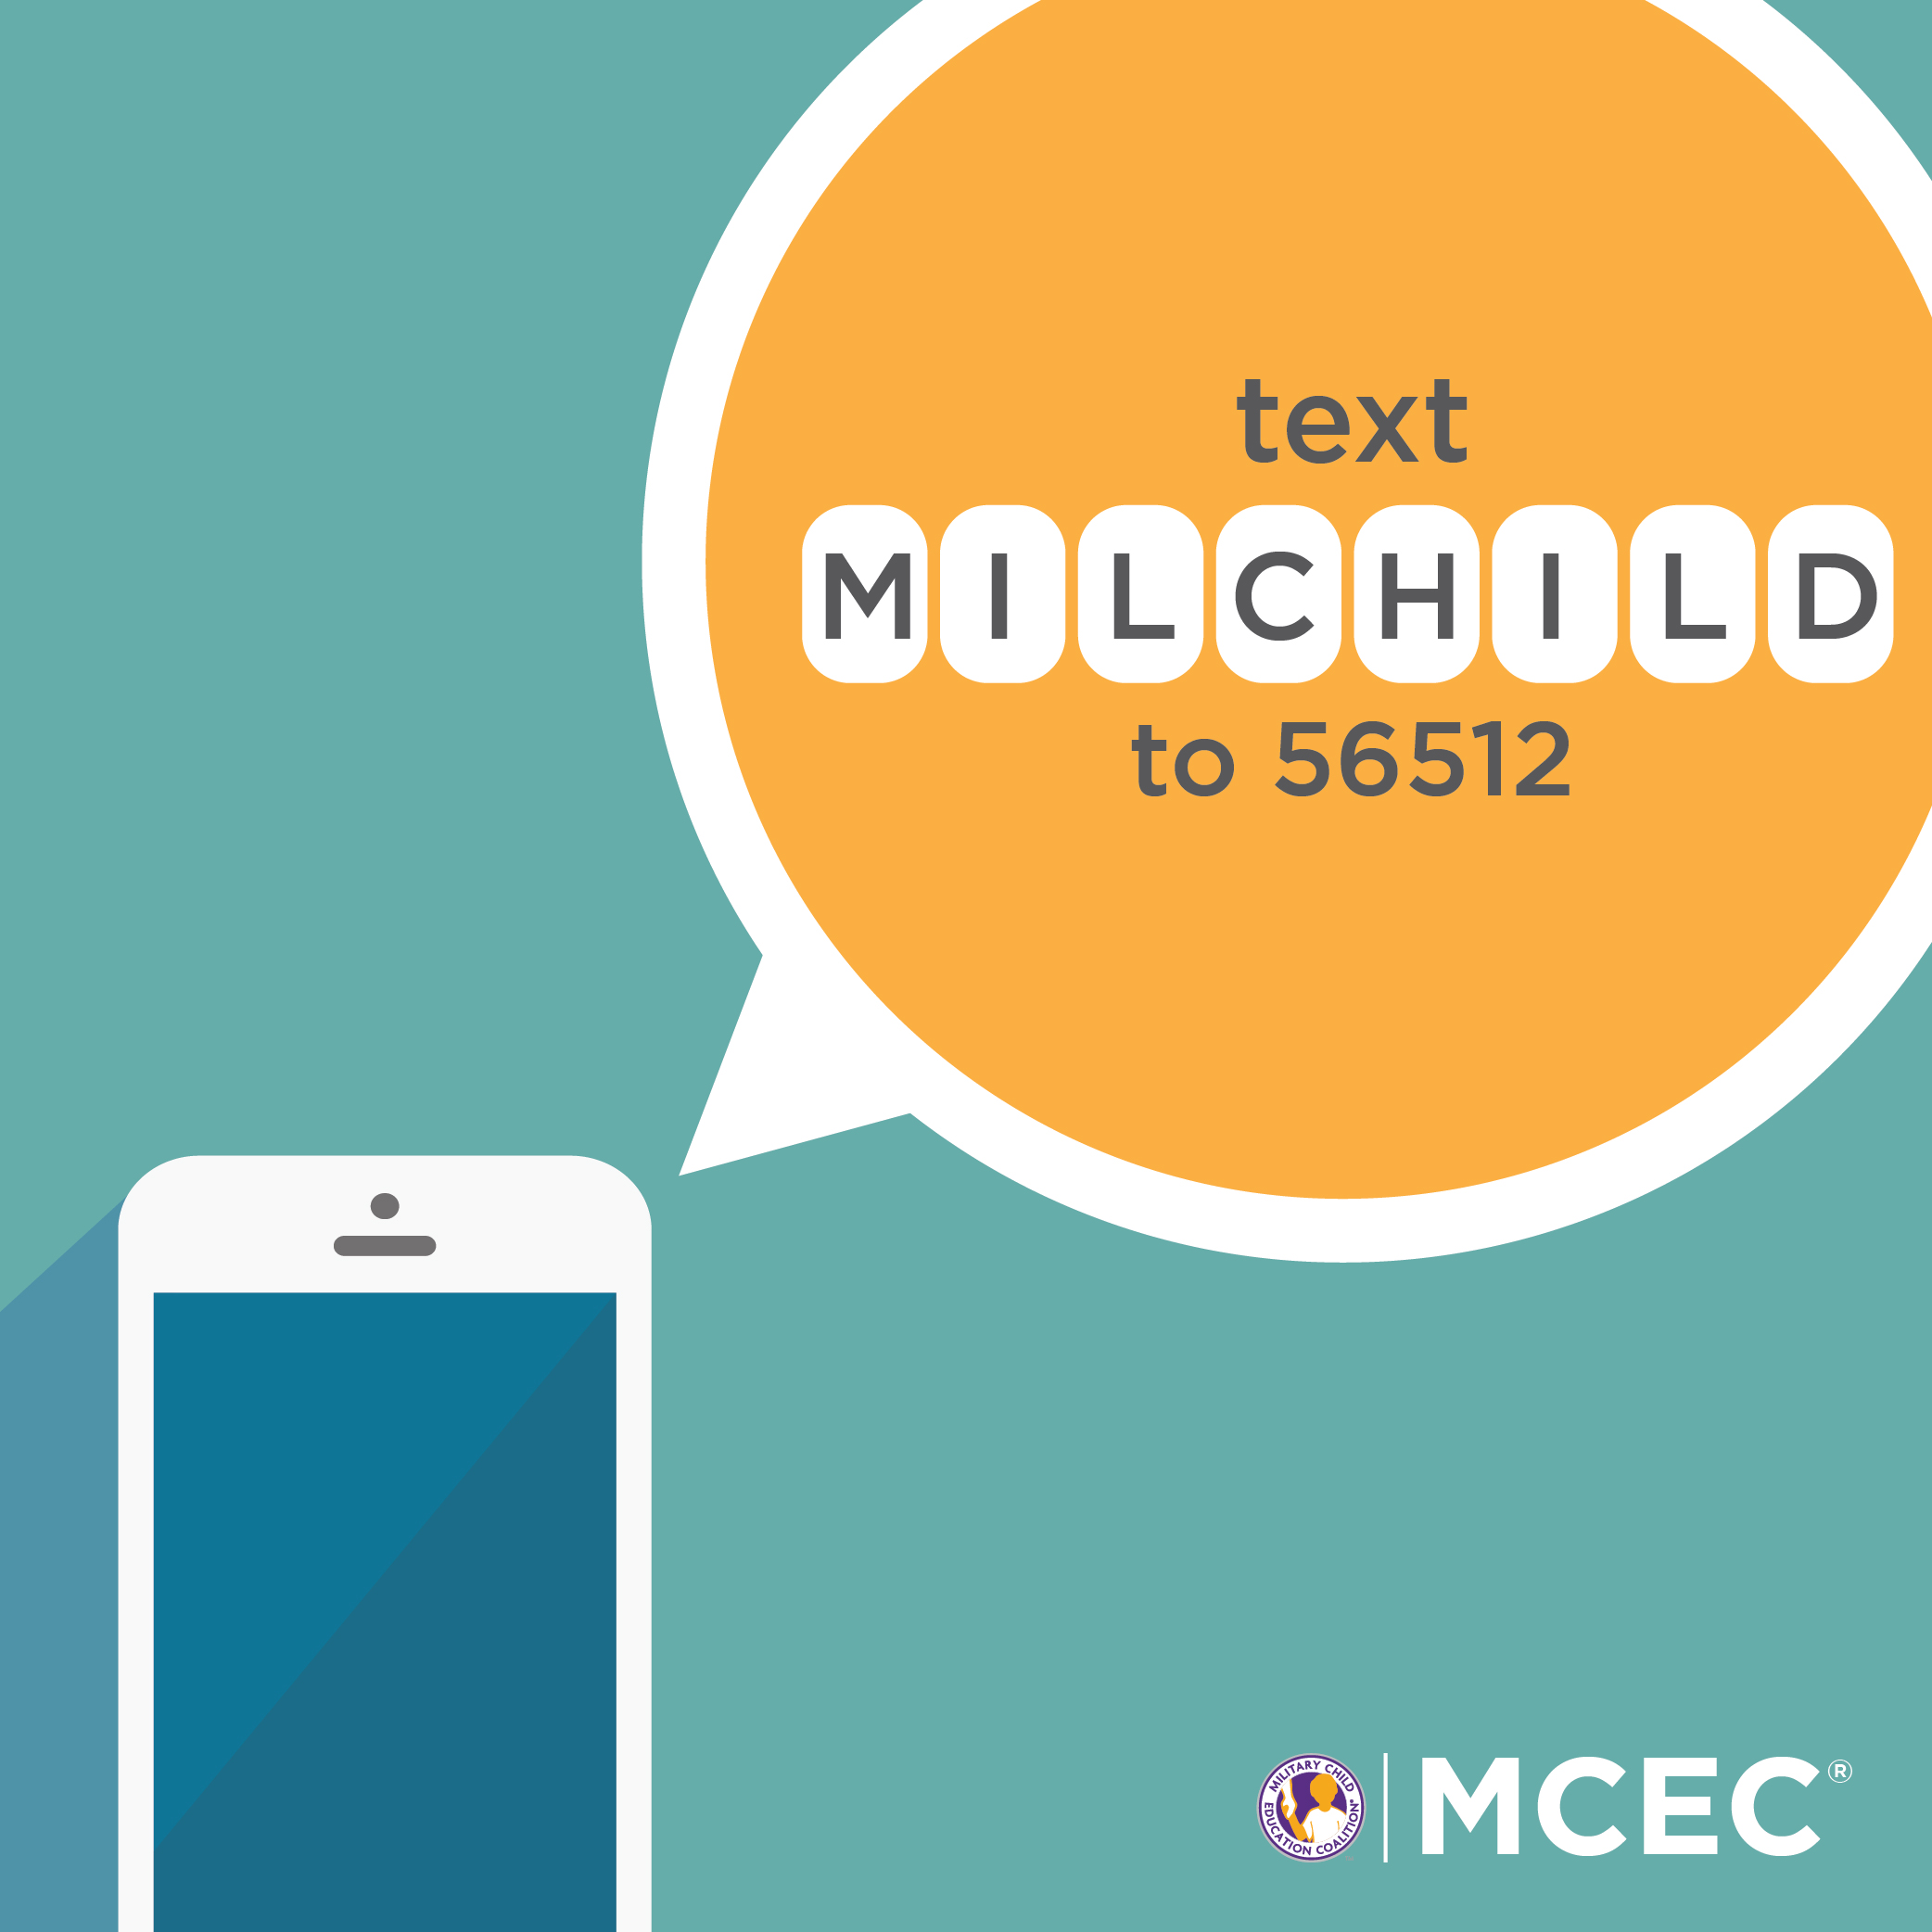 Text MILCHILD to 56512 to Donate